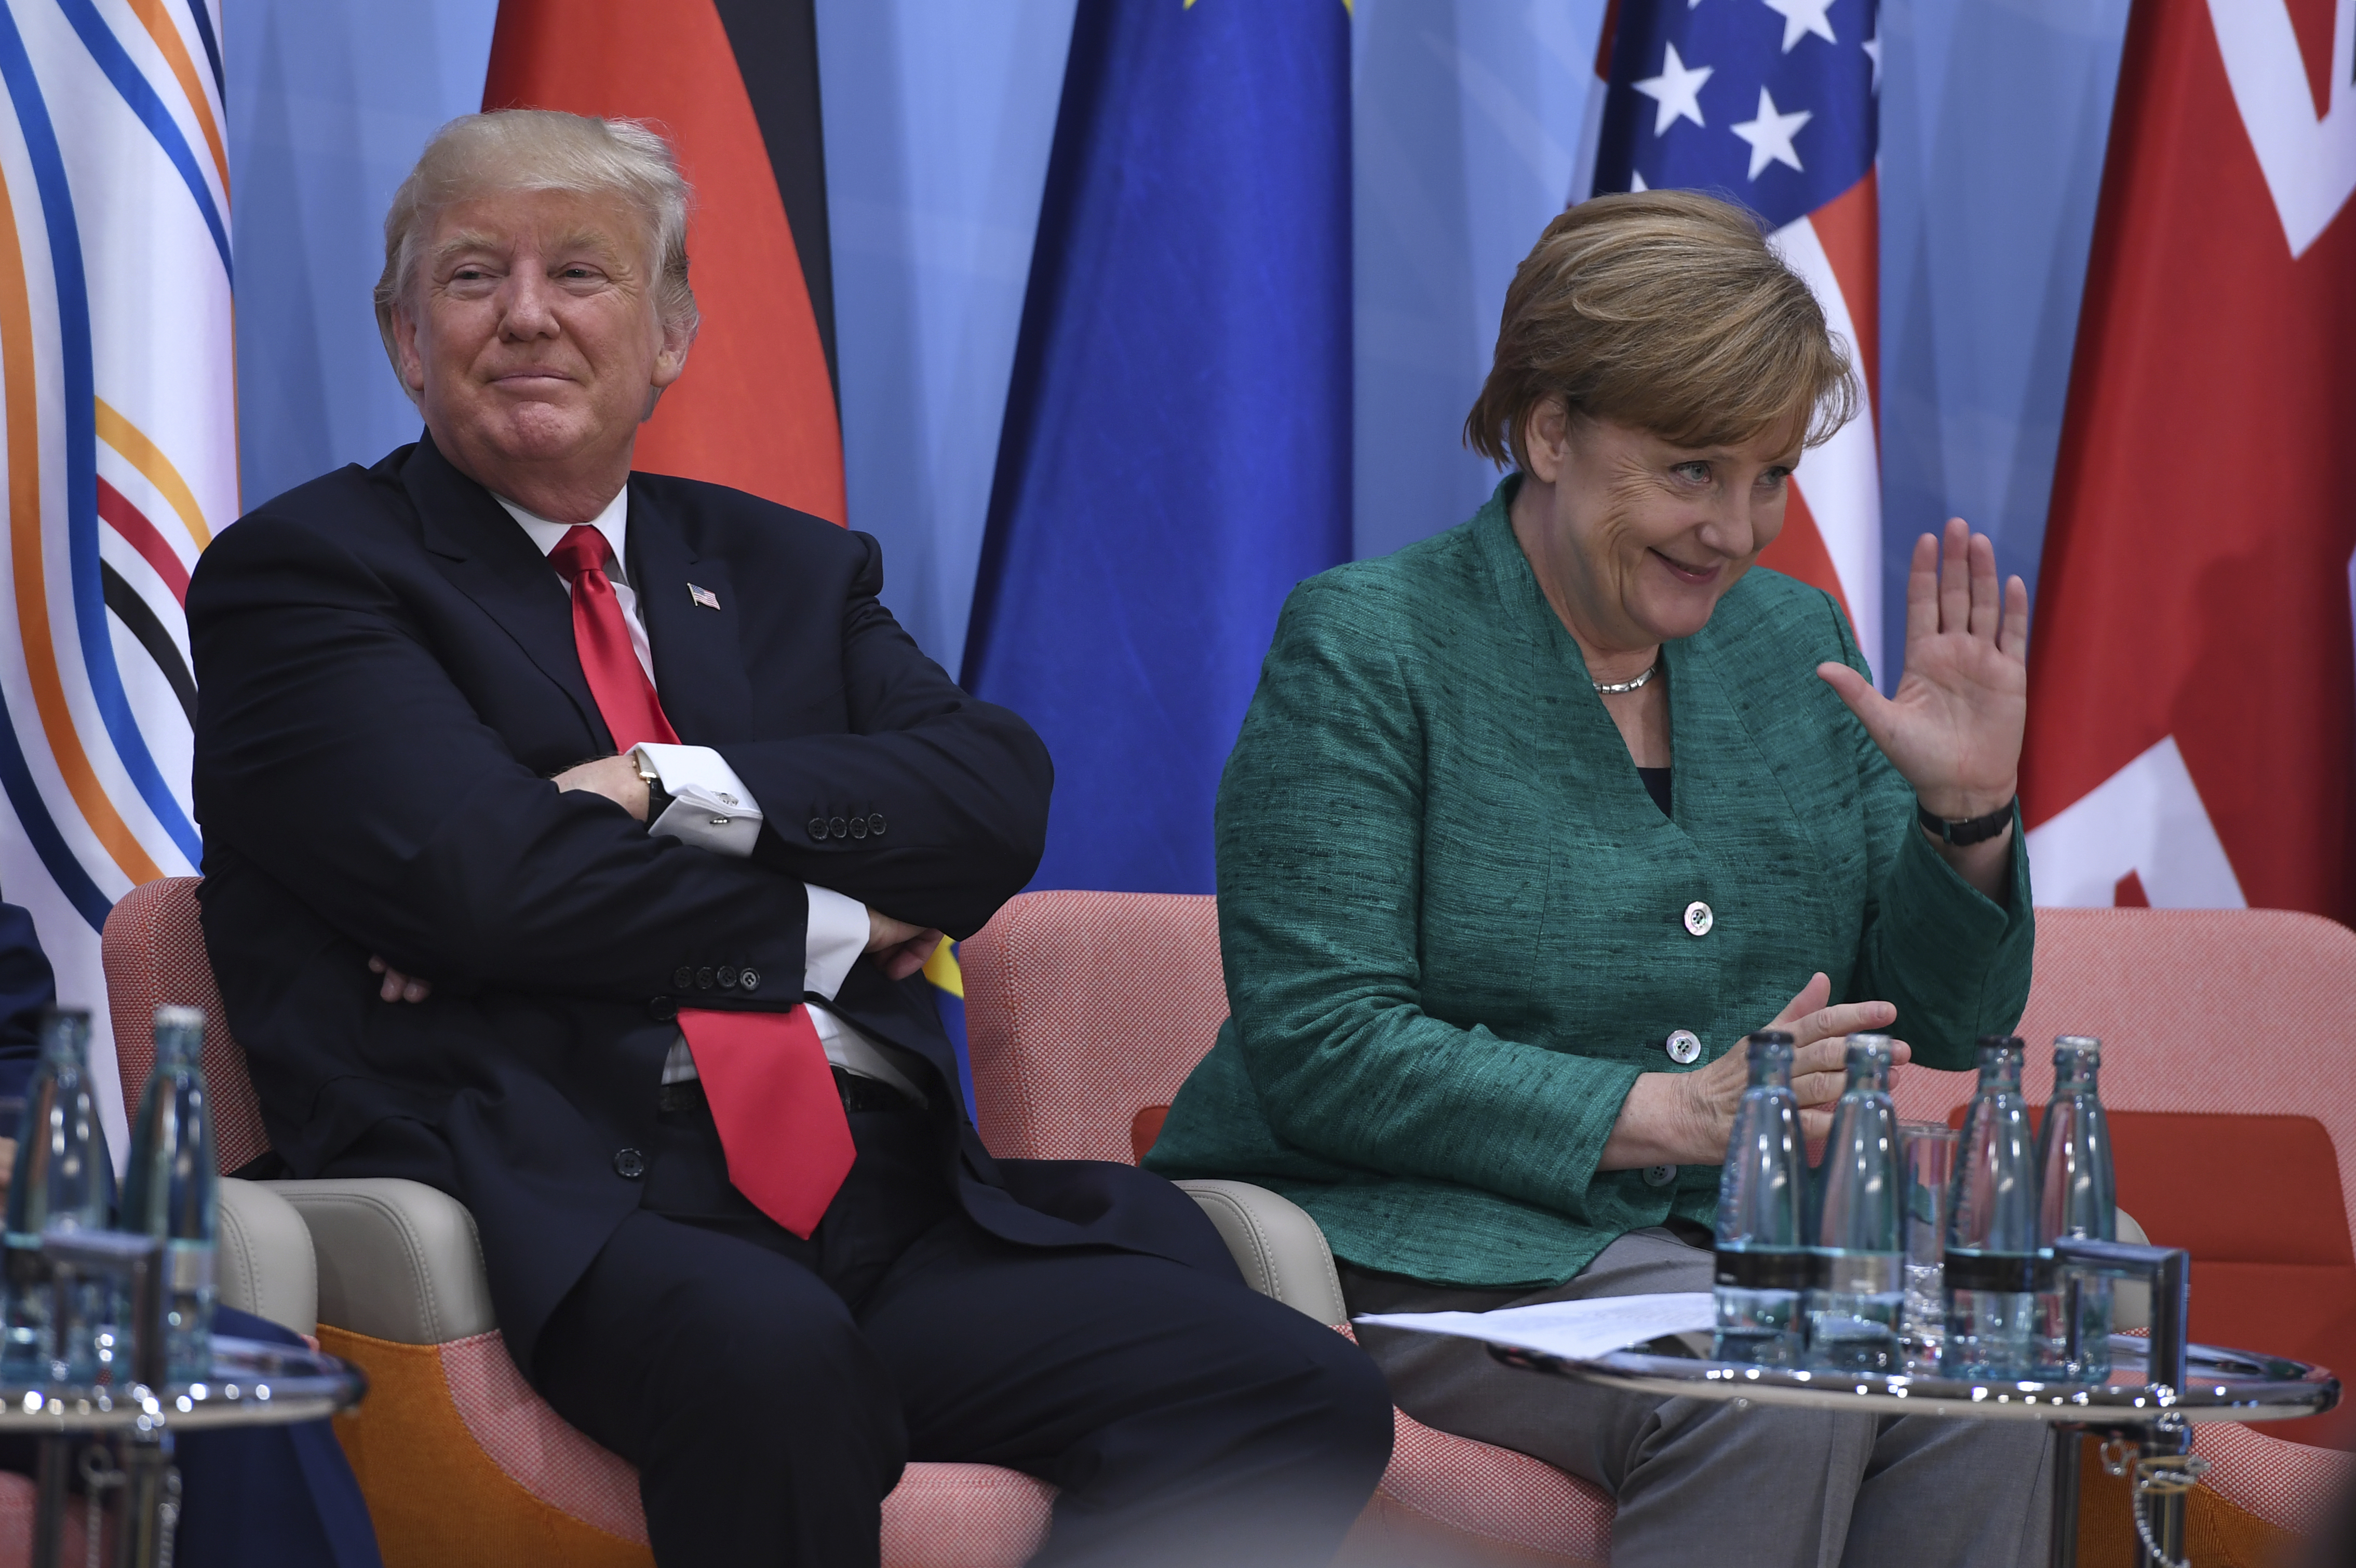 U.S. President Donald Trump, left, and German Chancellor Angela Merkel are seen at the panel discussion of the Women's Entrepreneur Finance event on the second day of the G-20 summit in Hamburg, Germany, July 8, 2017.